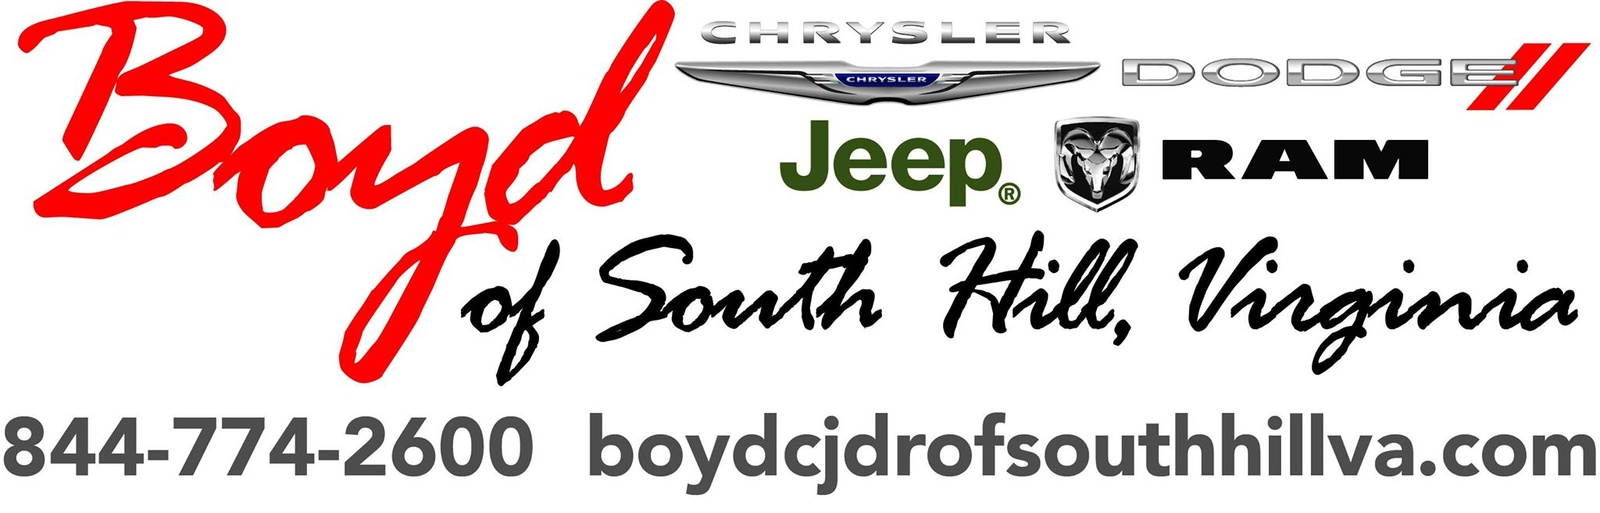 Audi Richmond Va >> Boyd Chrysler Dodge Jeep Ram of South Hill - South Hill, VA: Read Consumer reviews, Browse Used ...